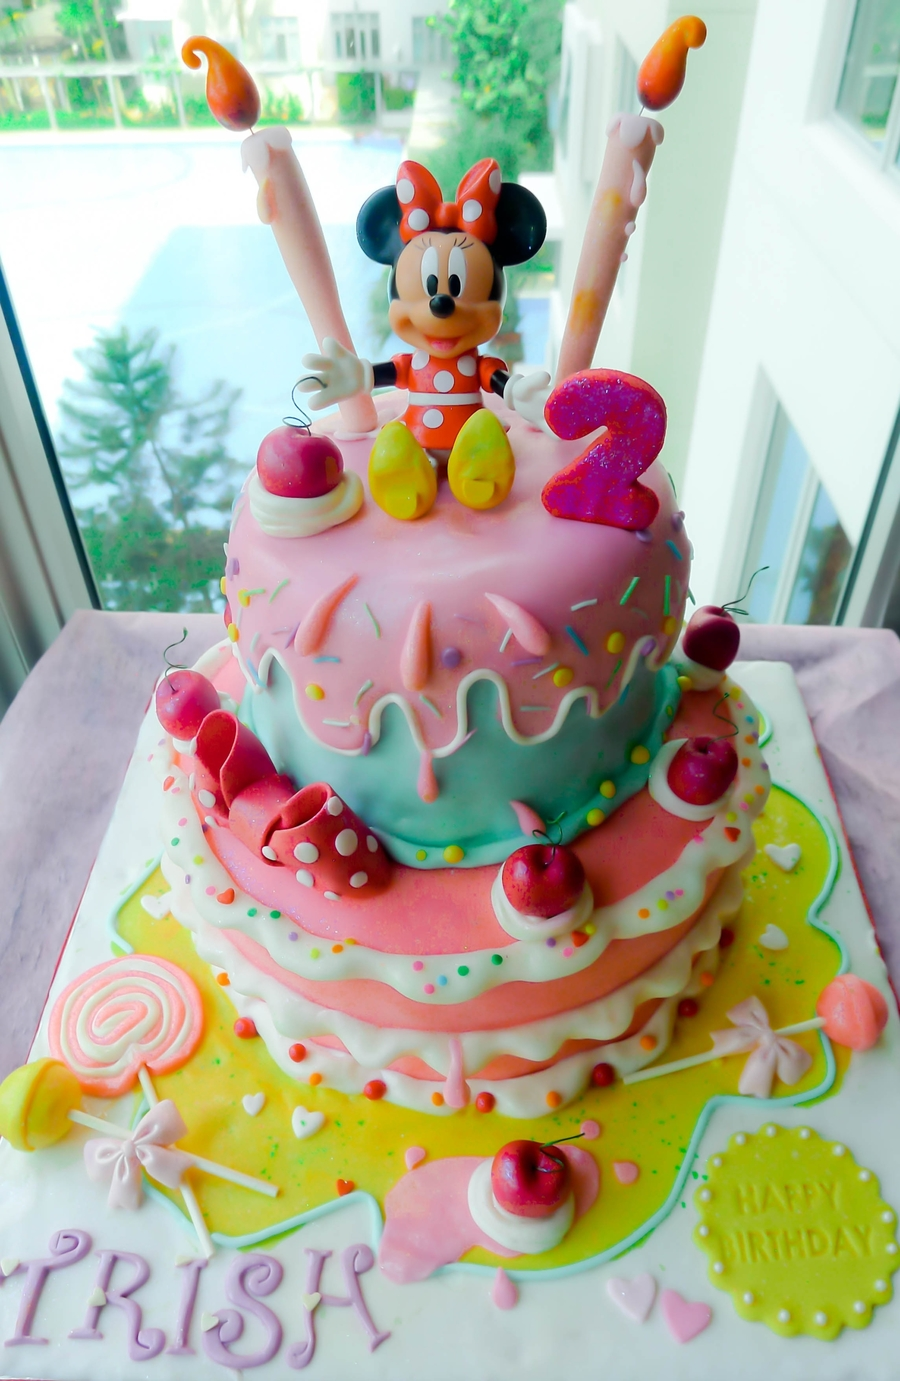 Super Torte di compleanno di Minnie : Blogmamma.it NV21